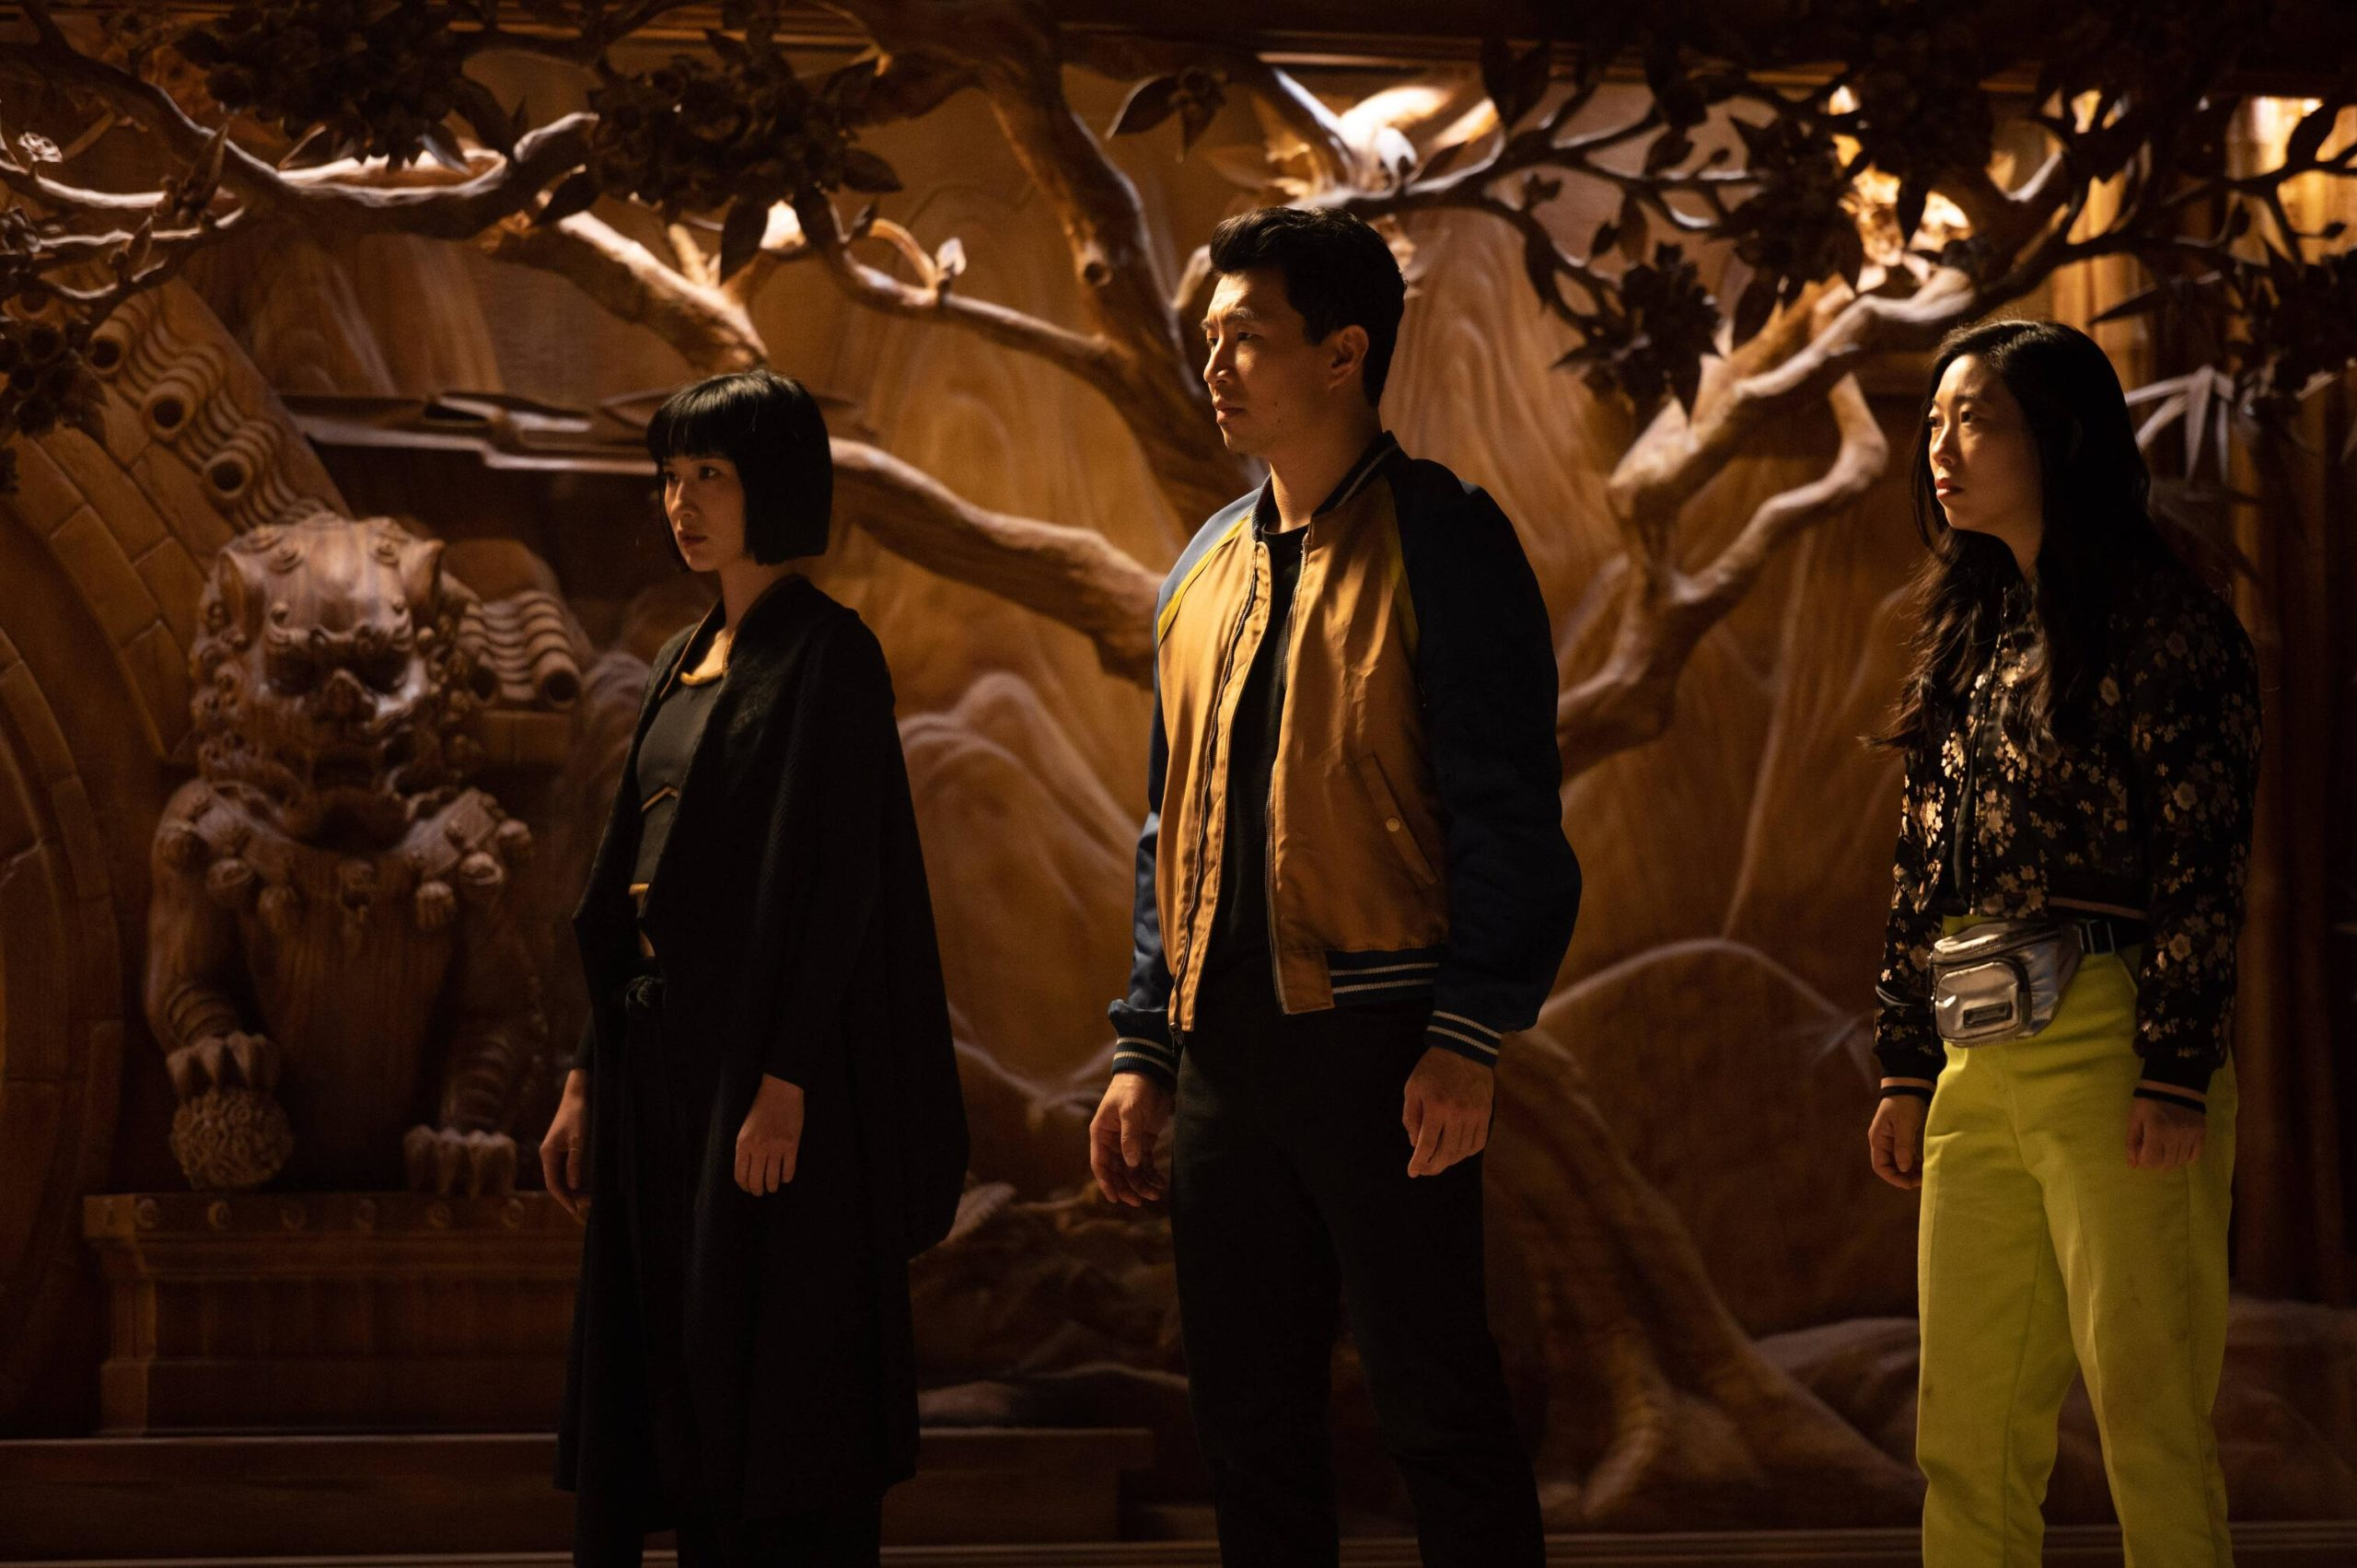 (L-R): Xialing (Meng'er Zhang), Shang-Chi (Simu Liu) and Katy (Awkwafina) in Marvel Studios' SHANG-CHI AND THE LEGEND OF THE TEN RINGS